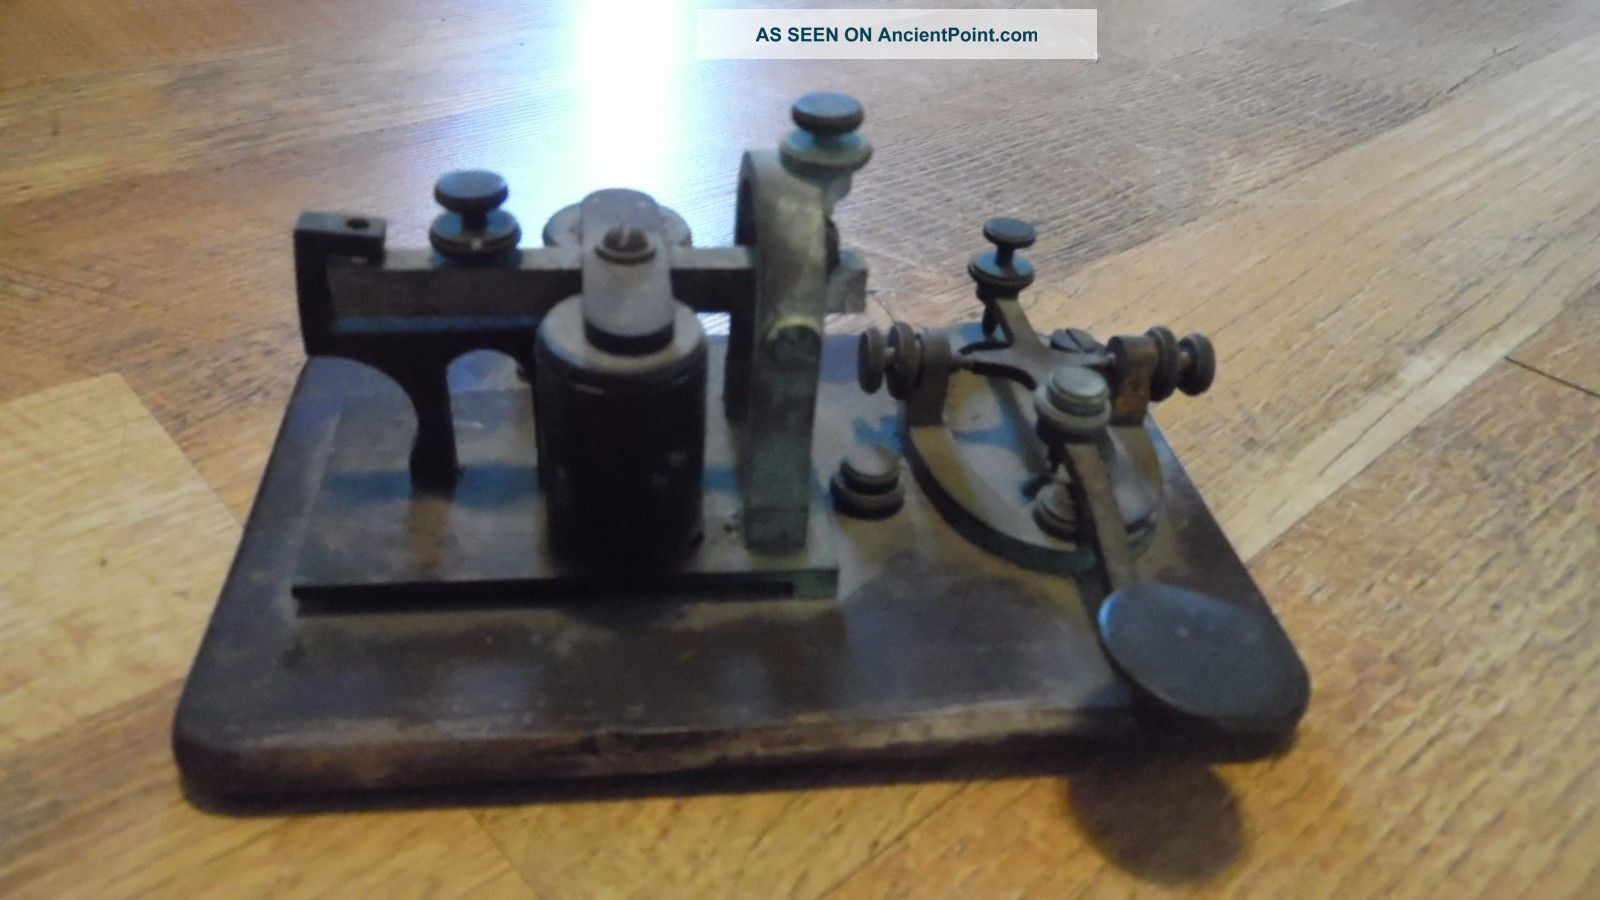 Antique Manhattan Electric Supply Co Morse Code Telegraph Key & Sounder 4 Ohms Telegraphs photo